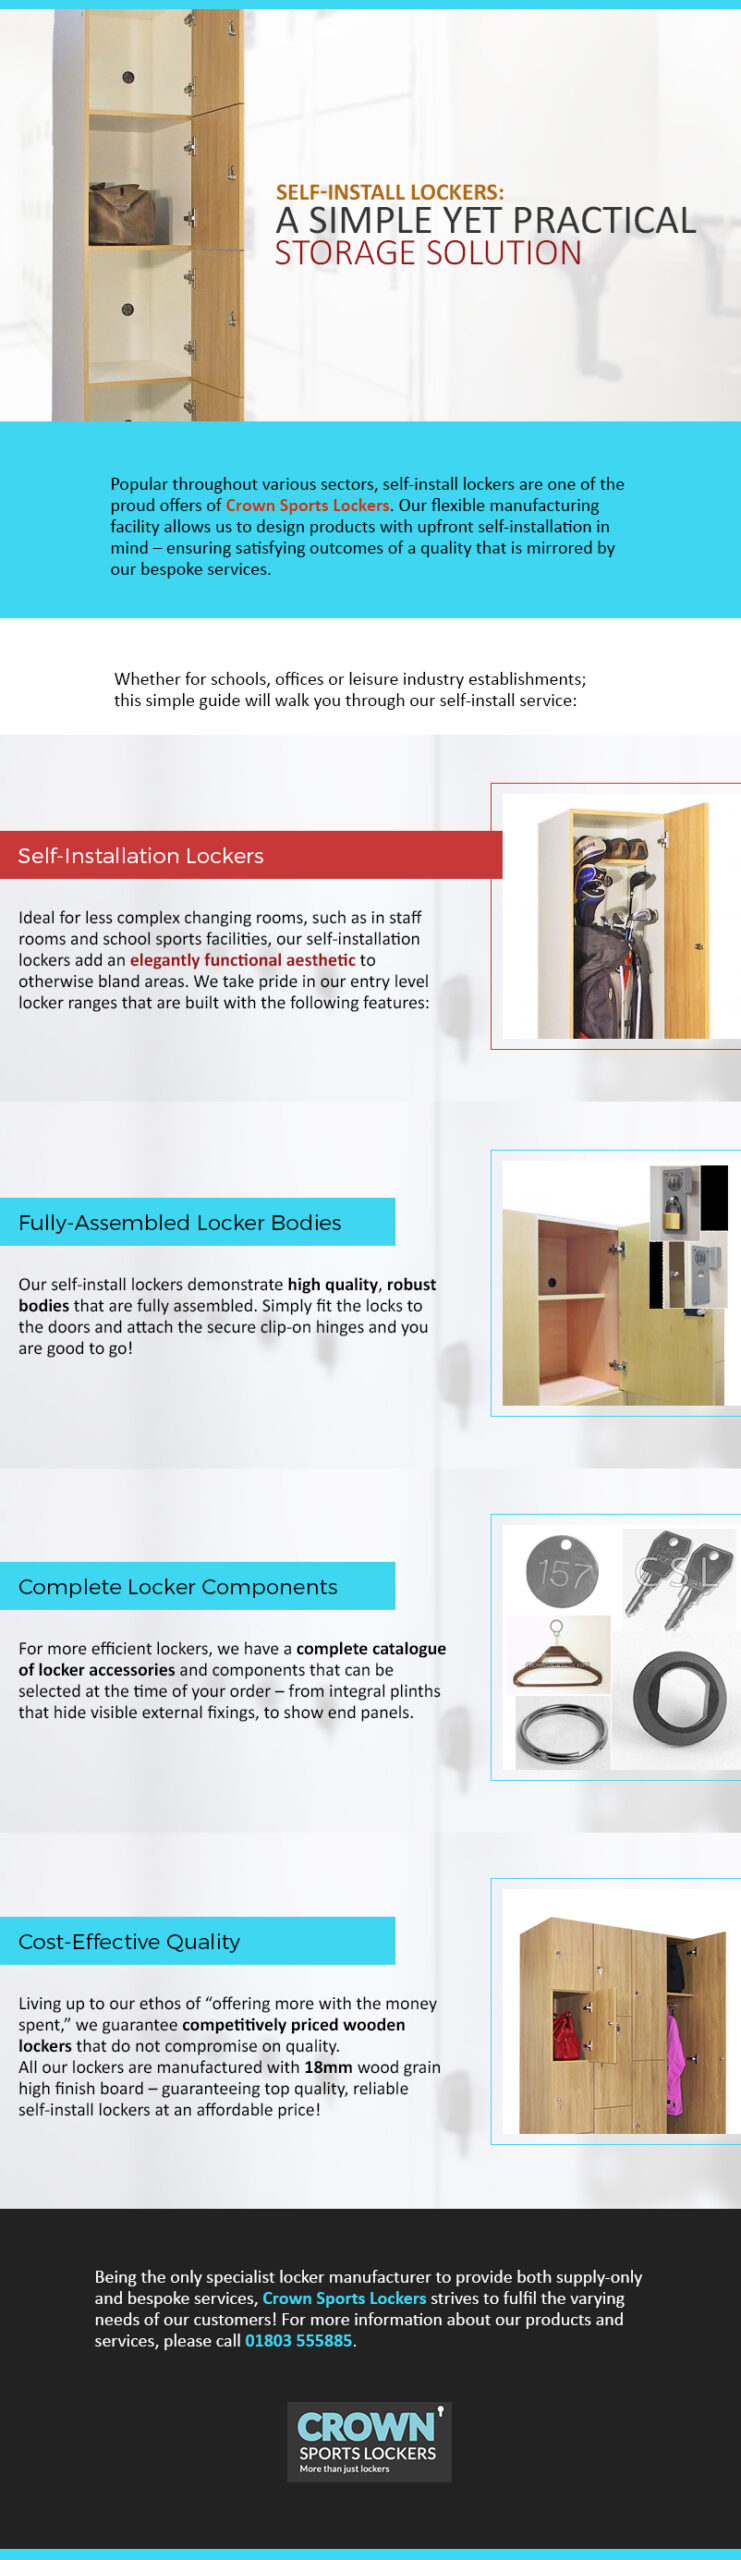 Self-install Lockers: A Simple yet Practical Storage Solution